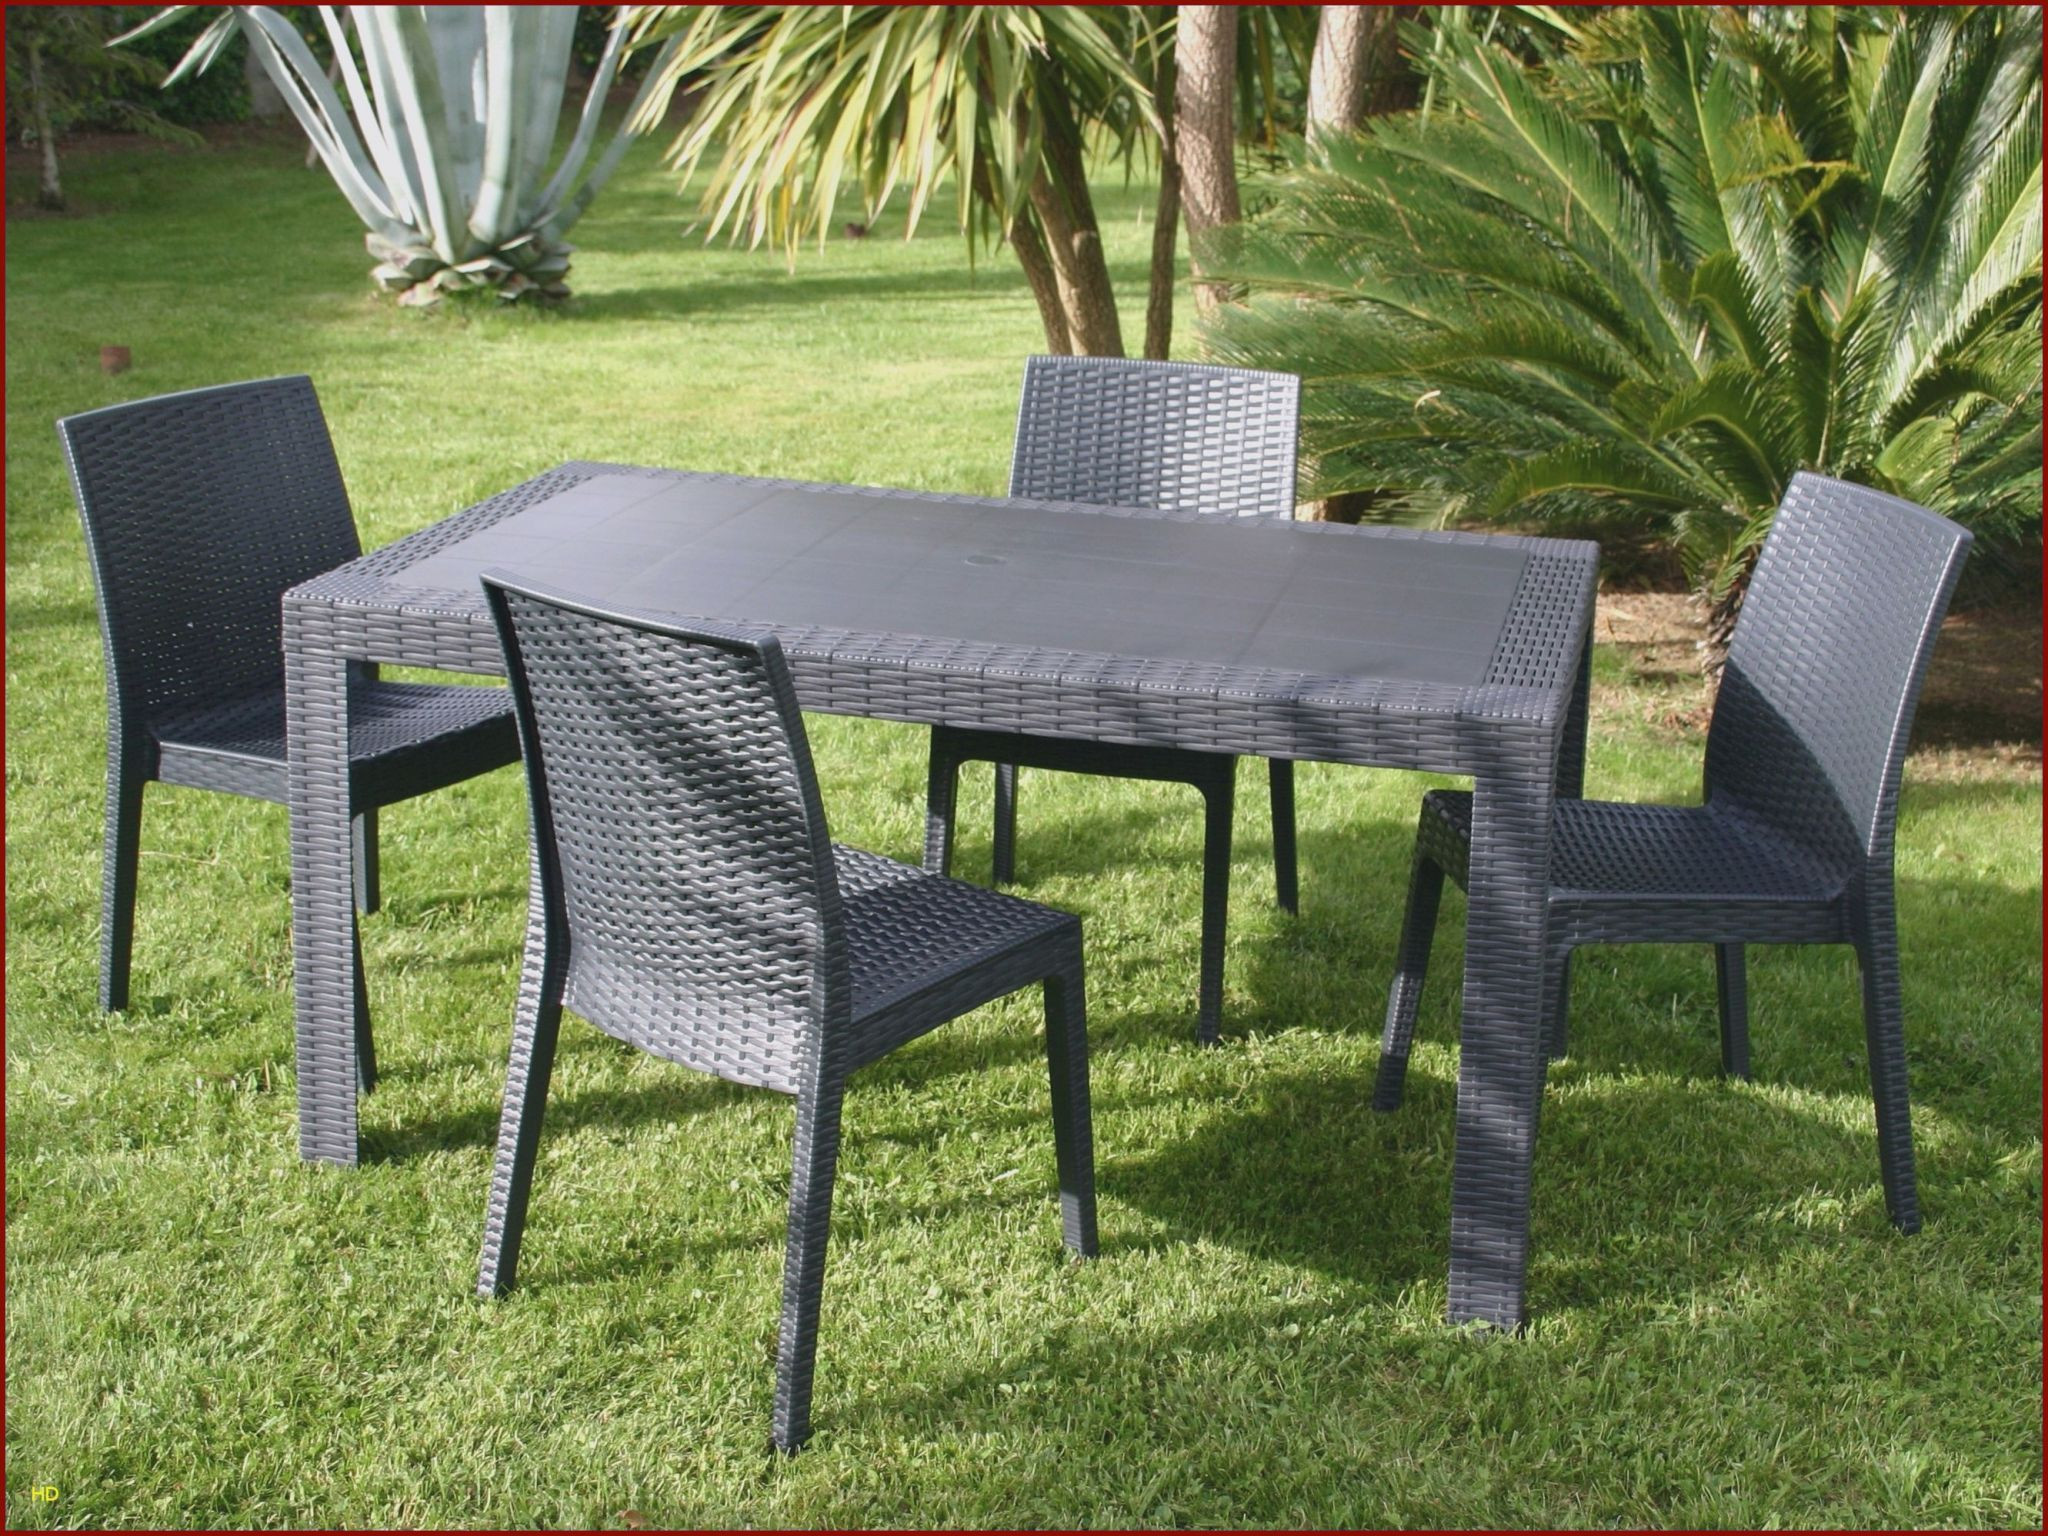 hamac 2 personnes chaises luxe chaise ice 0d table jardin resine lovely of hamac 2 personnes